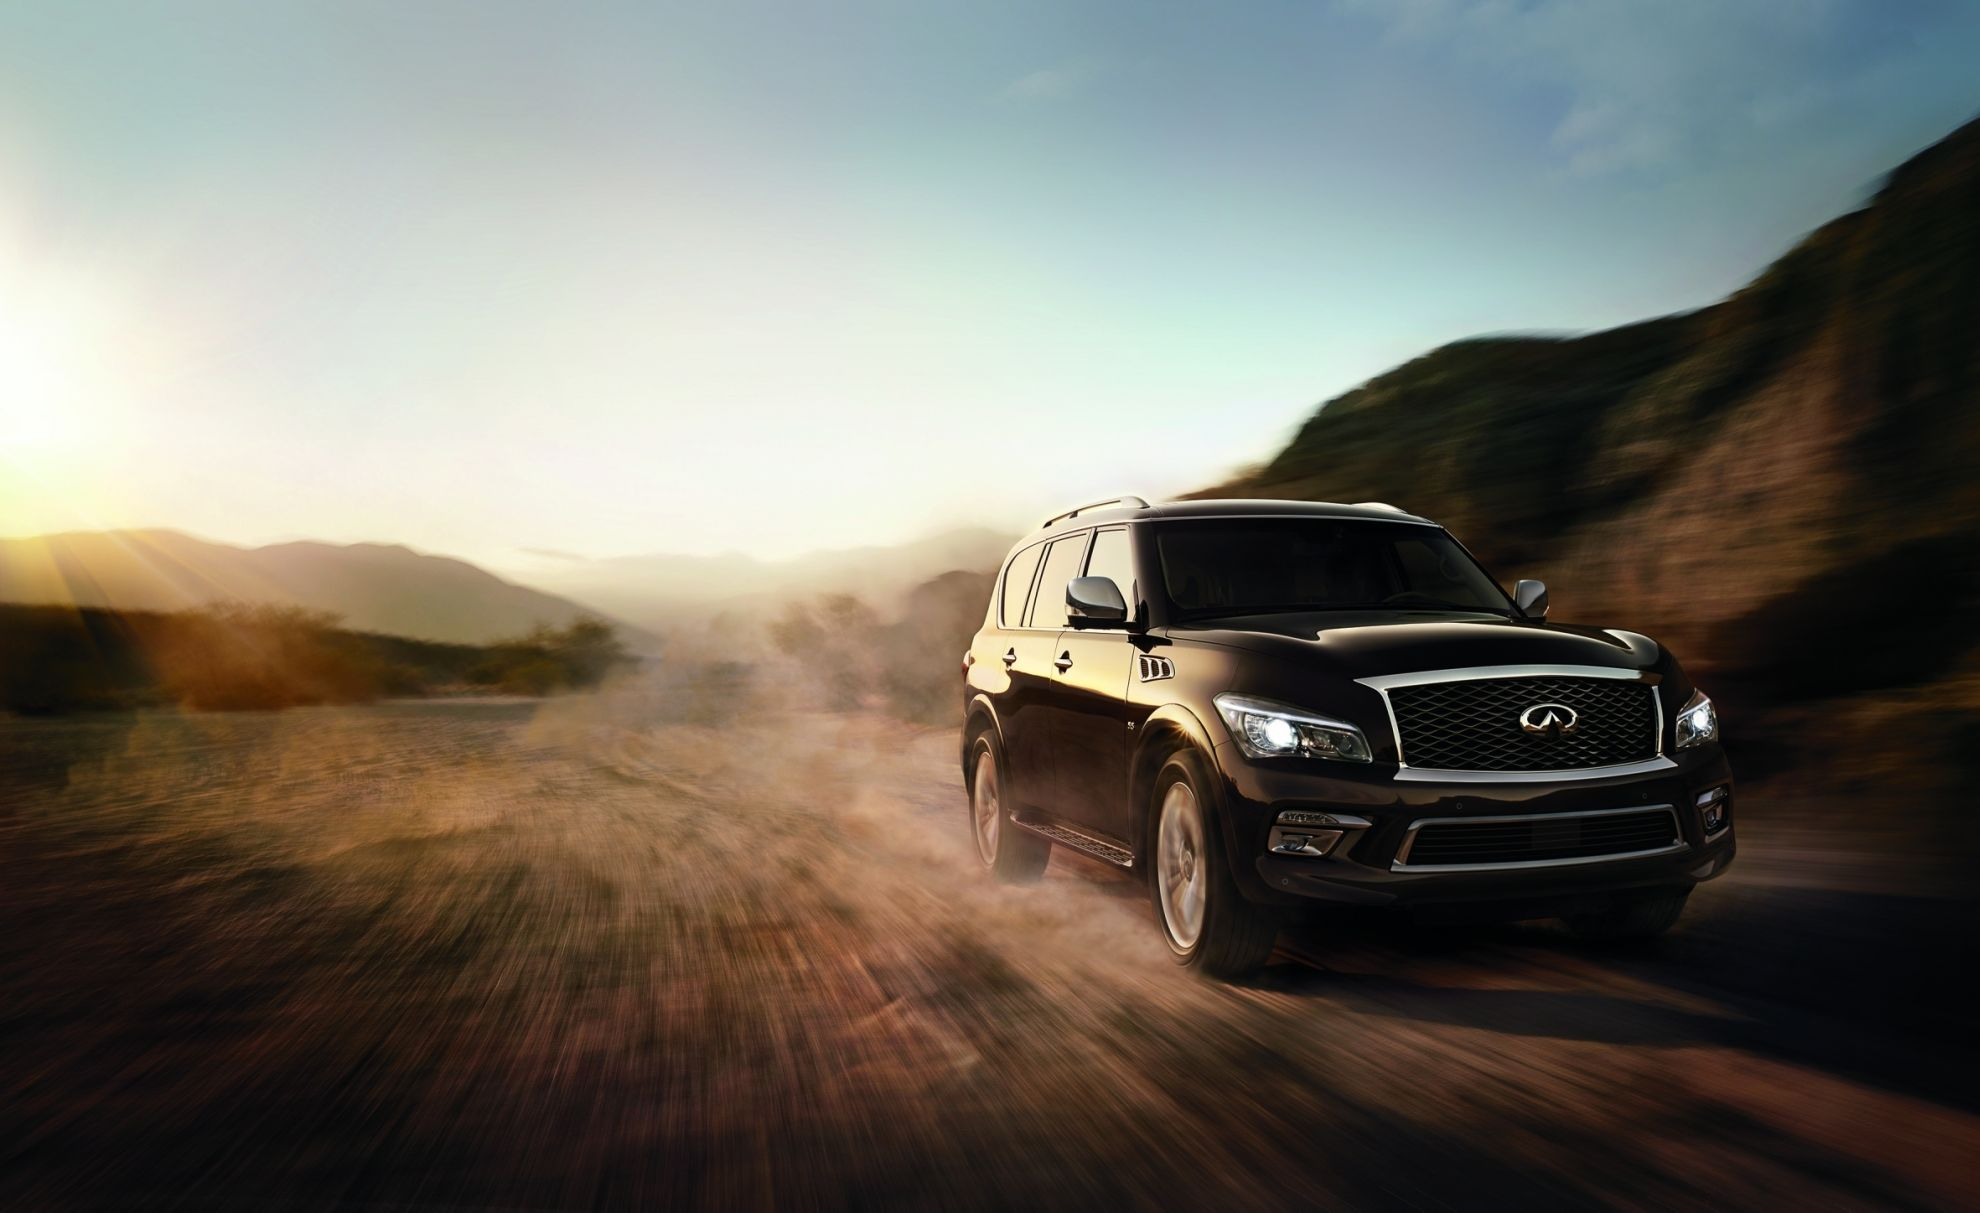 Infiniti-QX80---First-Class-Luxury-Every-Day